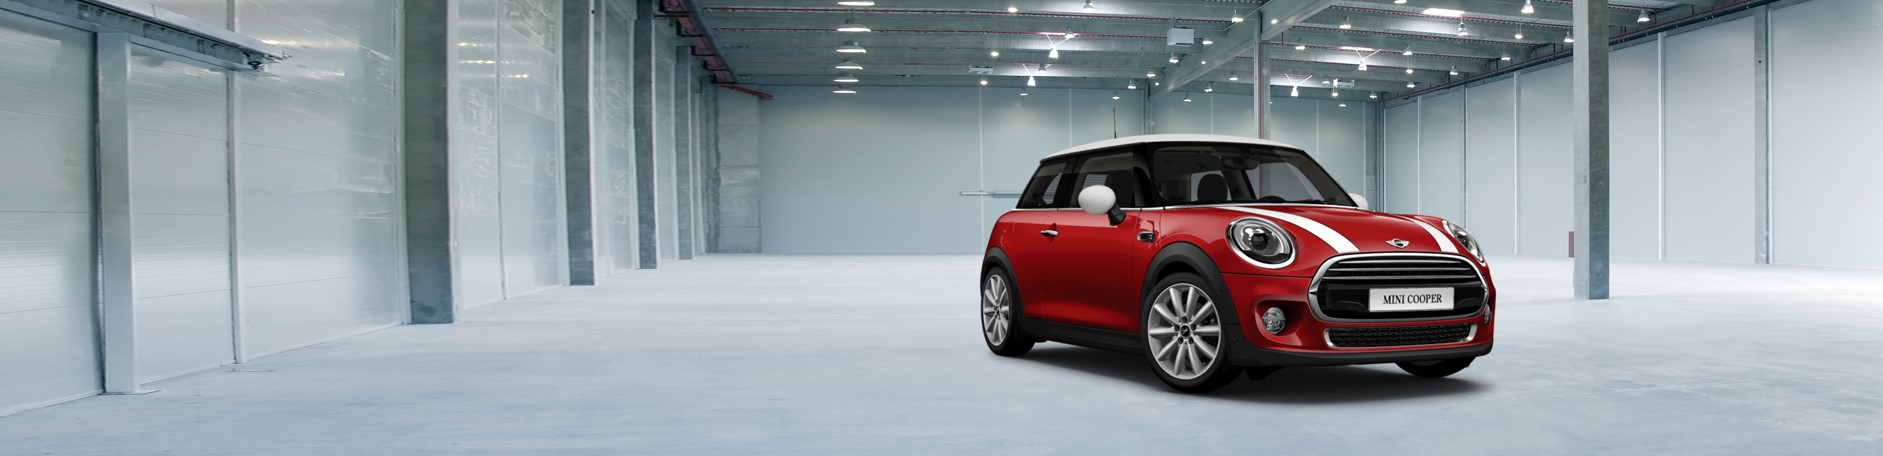 mini-leasing-offer-small